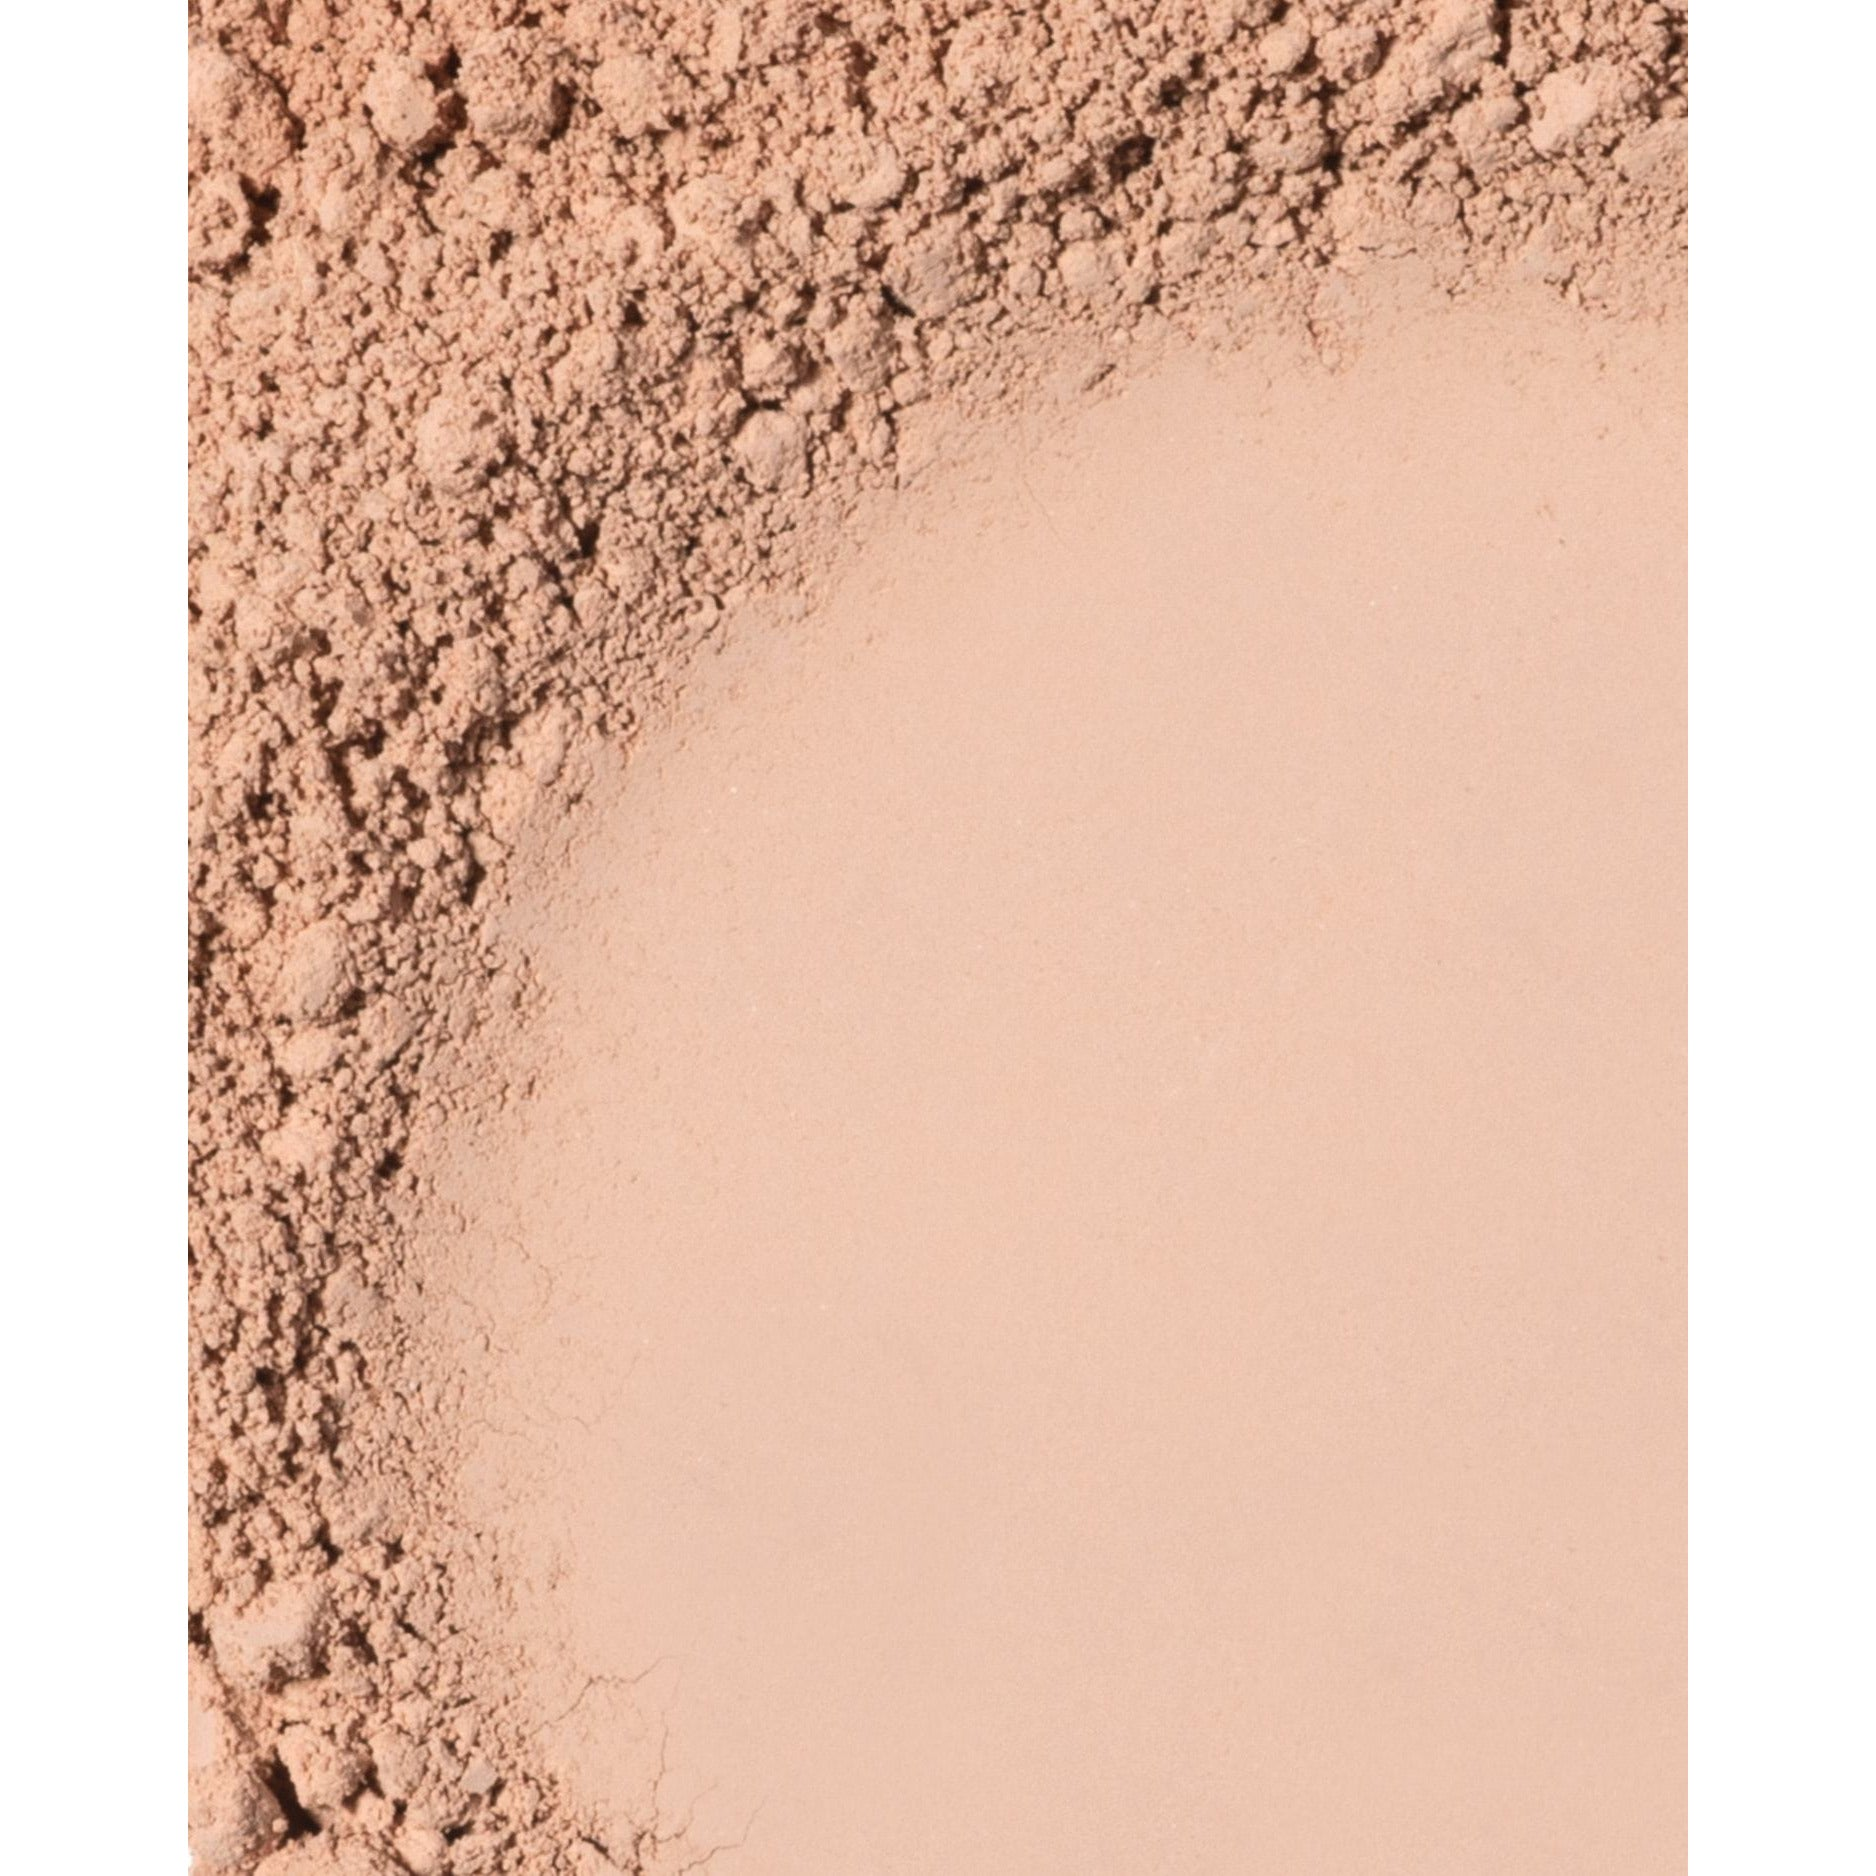 Clever - Omiana Loose Powder Mineral Foundation No Titanium Dioxide and No Mica